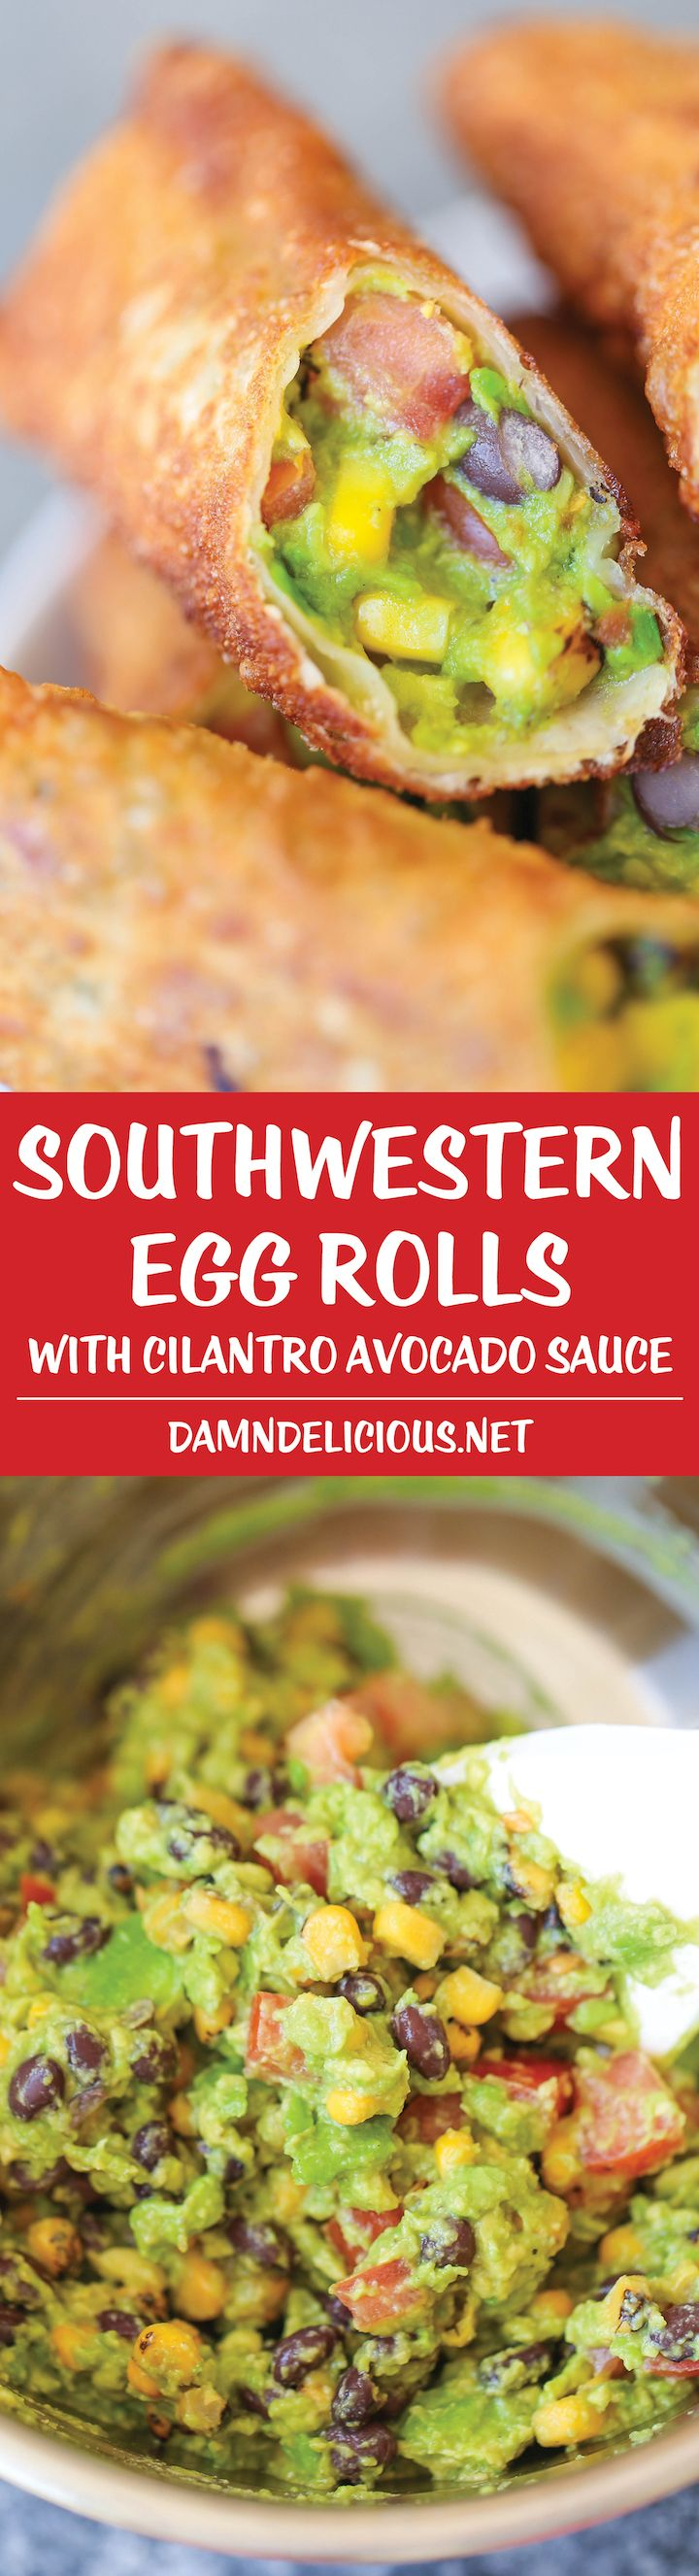 Southwestern Egg Rolls with Cilantro Avocado Sauce - Loaded with avocado, corn, beans and tomatoes! And you'll never guess that it's completely baked!